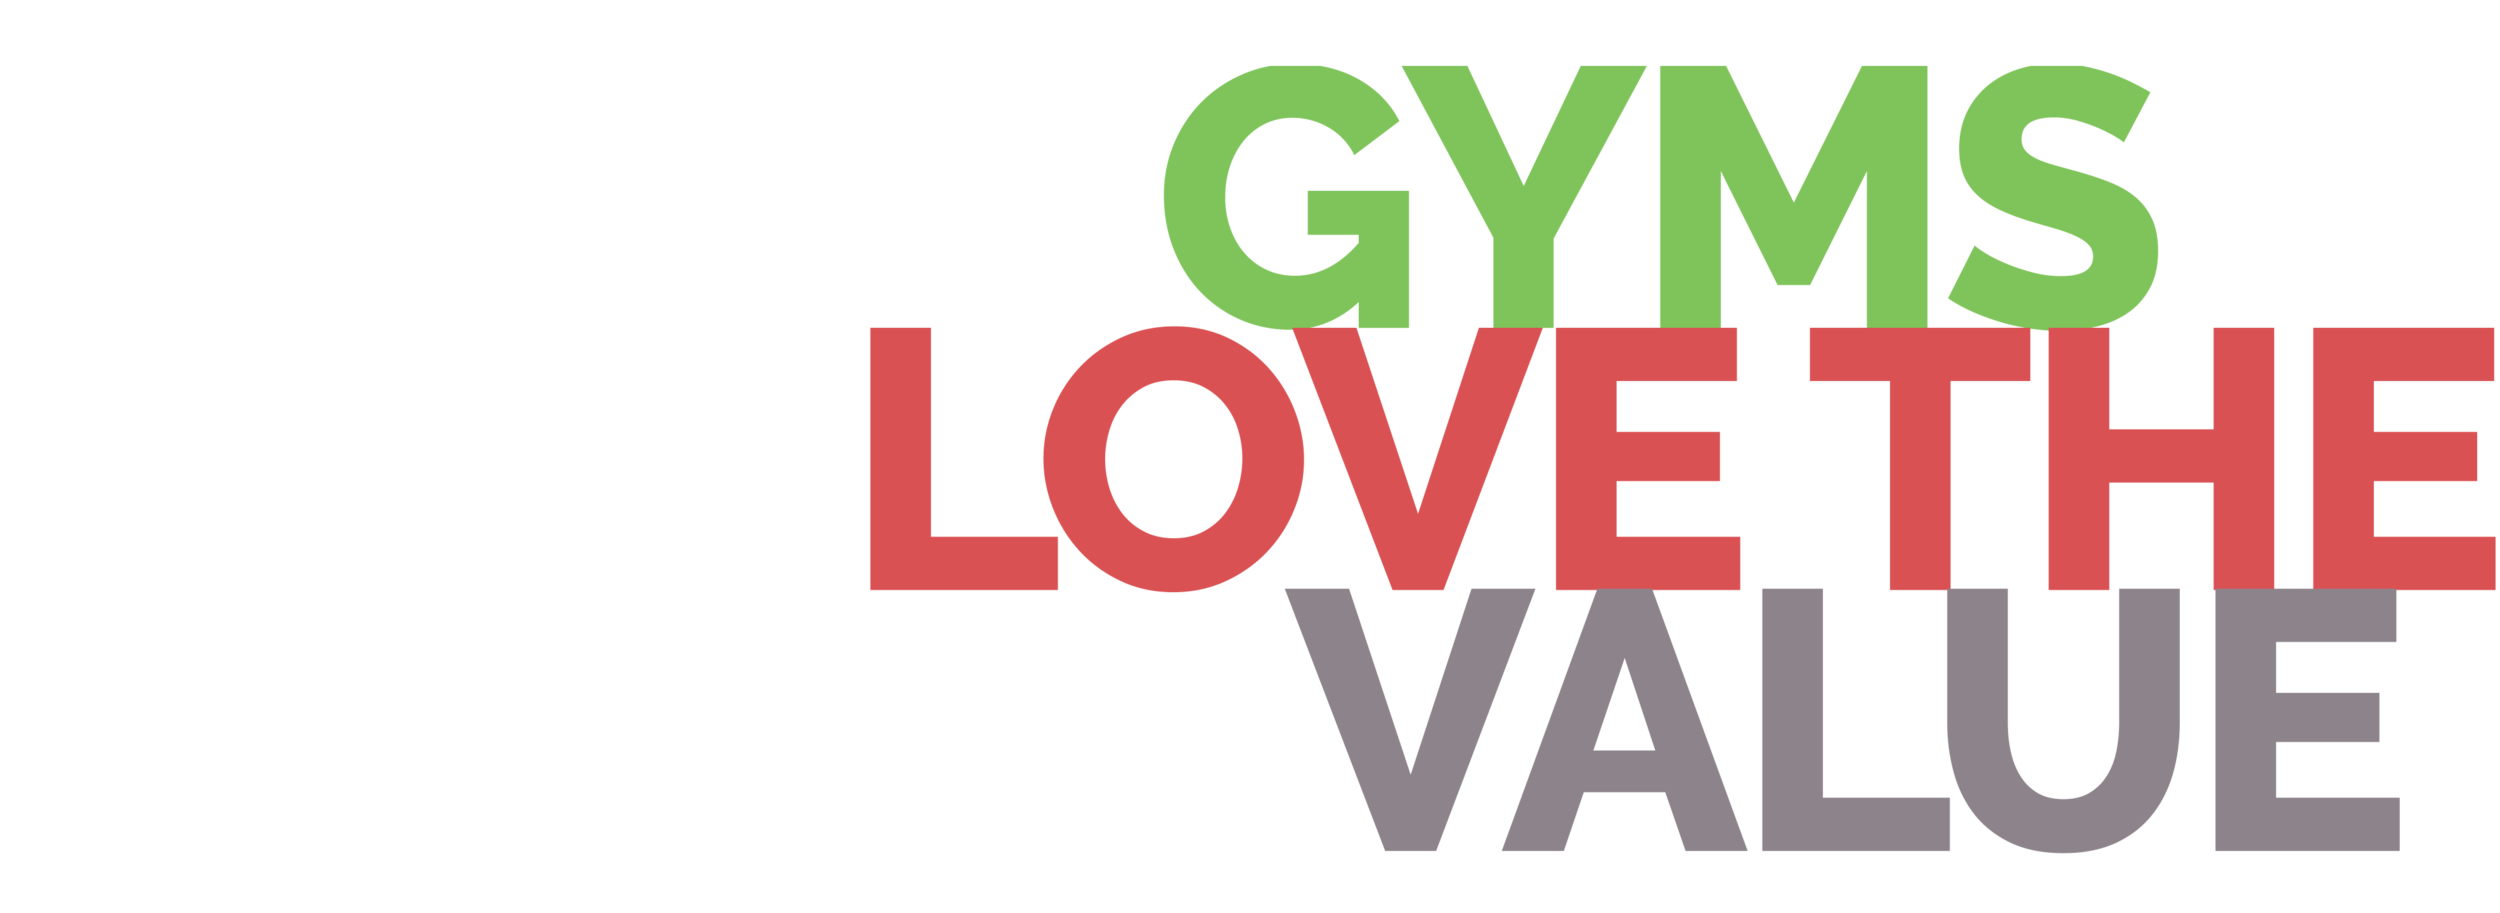 GYMS LOVE THE VALUE.png